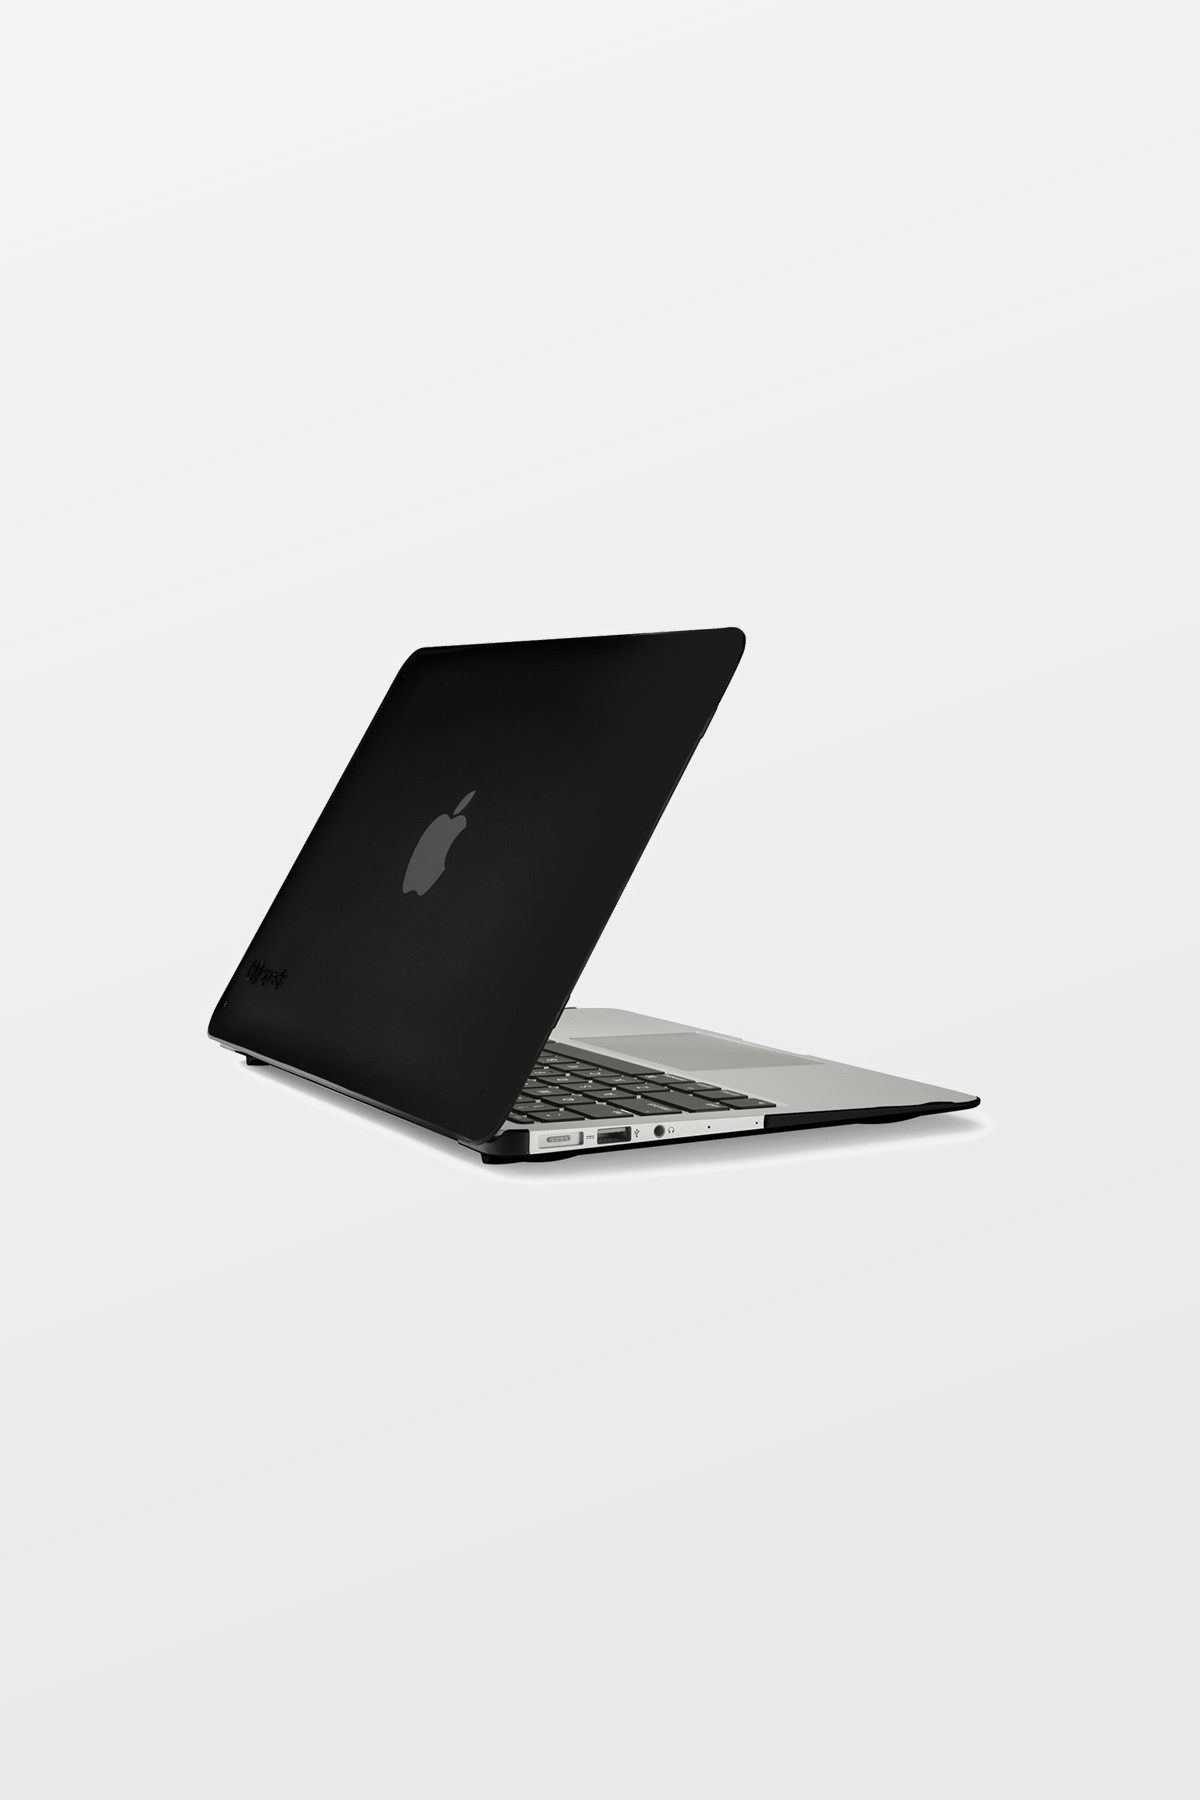 Speck MacBook Air 11-inch SeeThru Satin Black